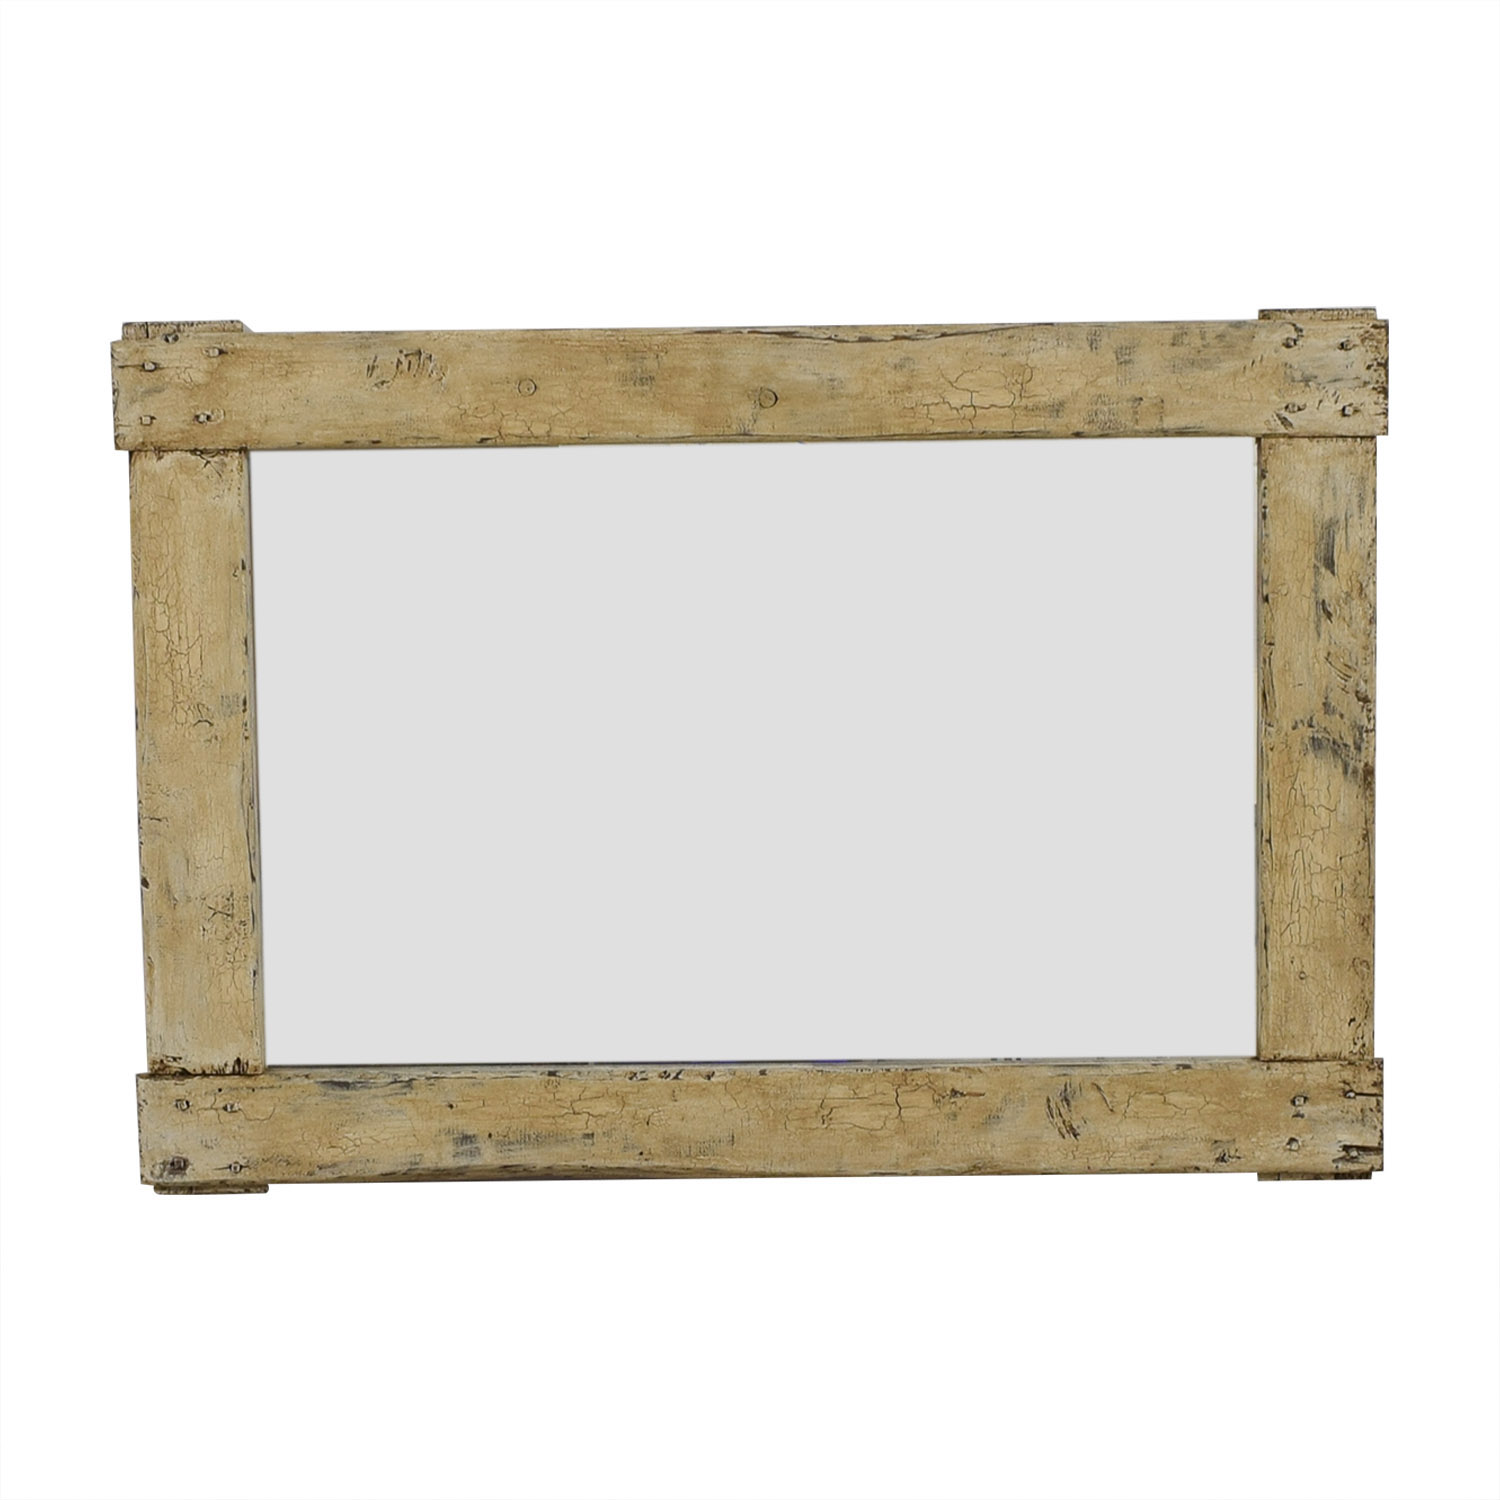 Pampa Tiles Pampa Tiles Custom Rustic Wood Frame Mirror for sale